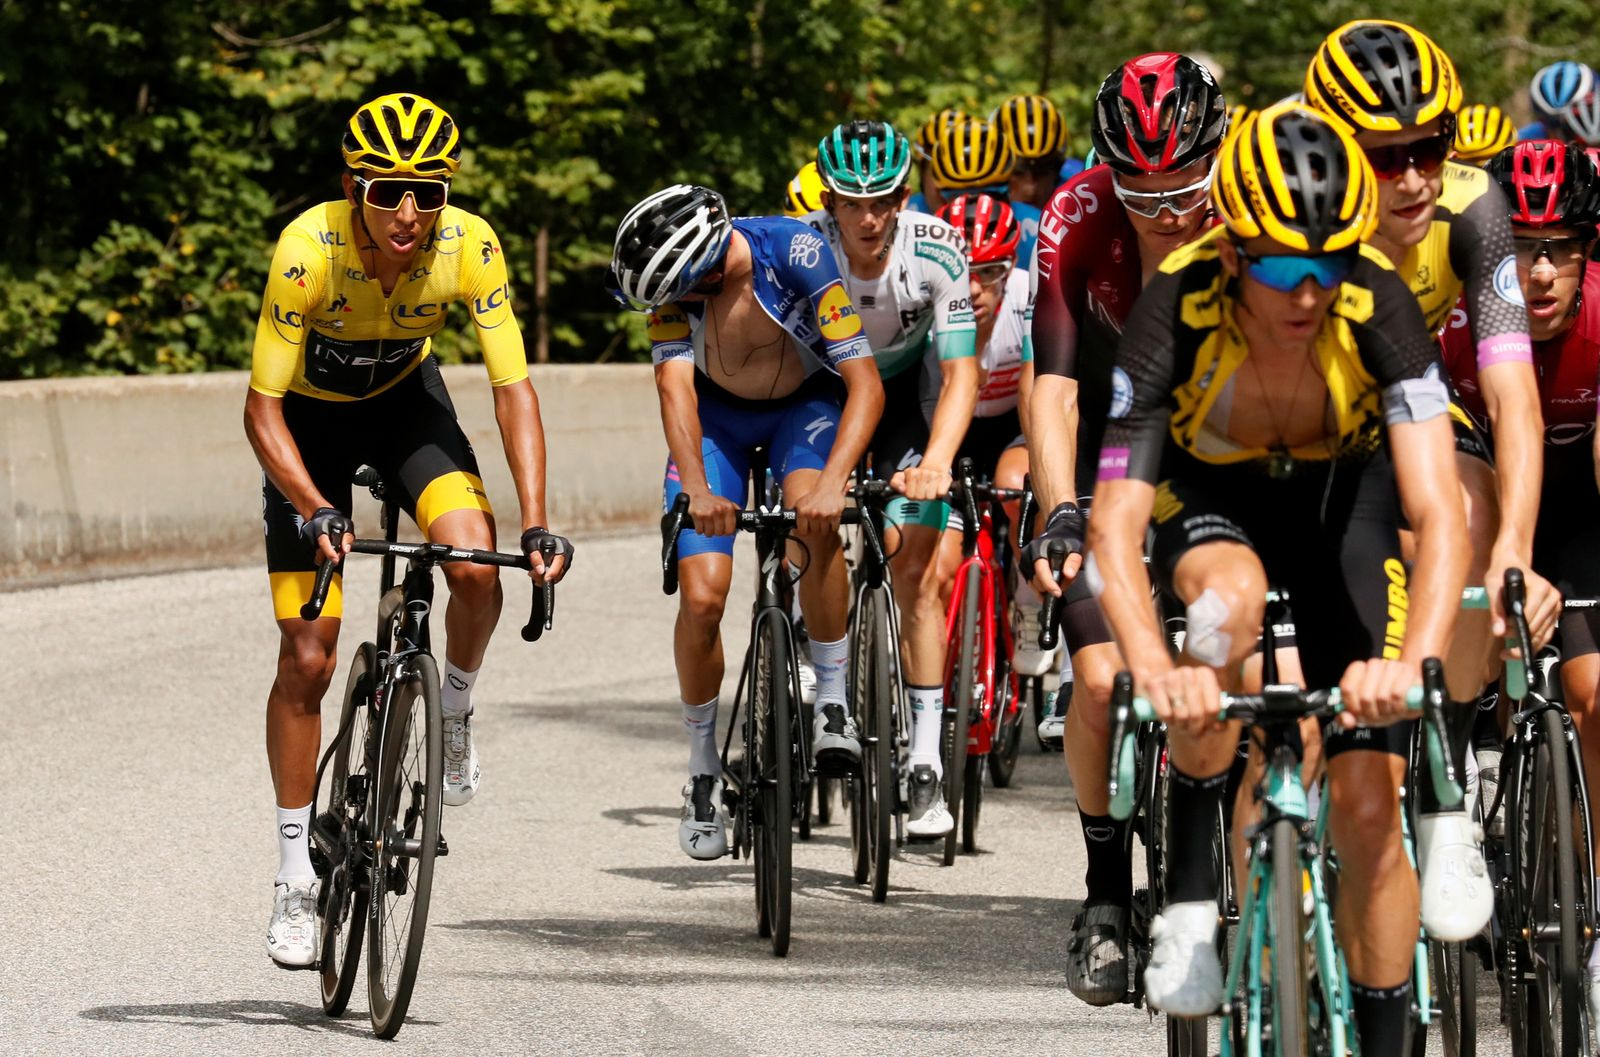 Tour de France - The 59.5-km Stage 20 from Albertville to Val Thorens